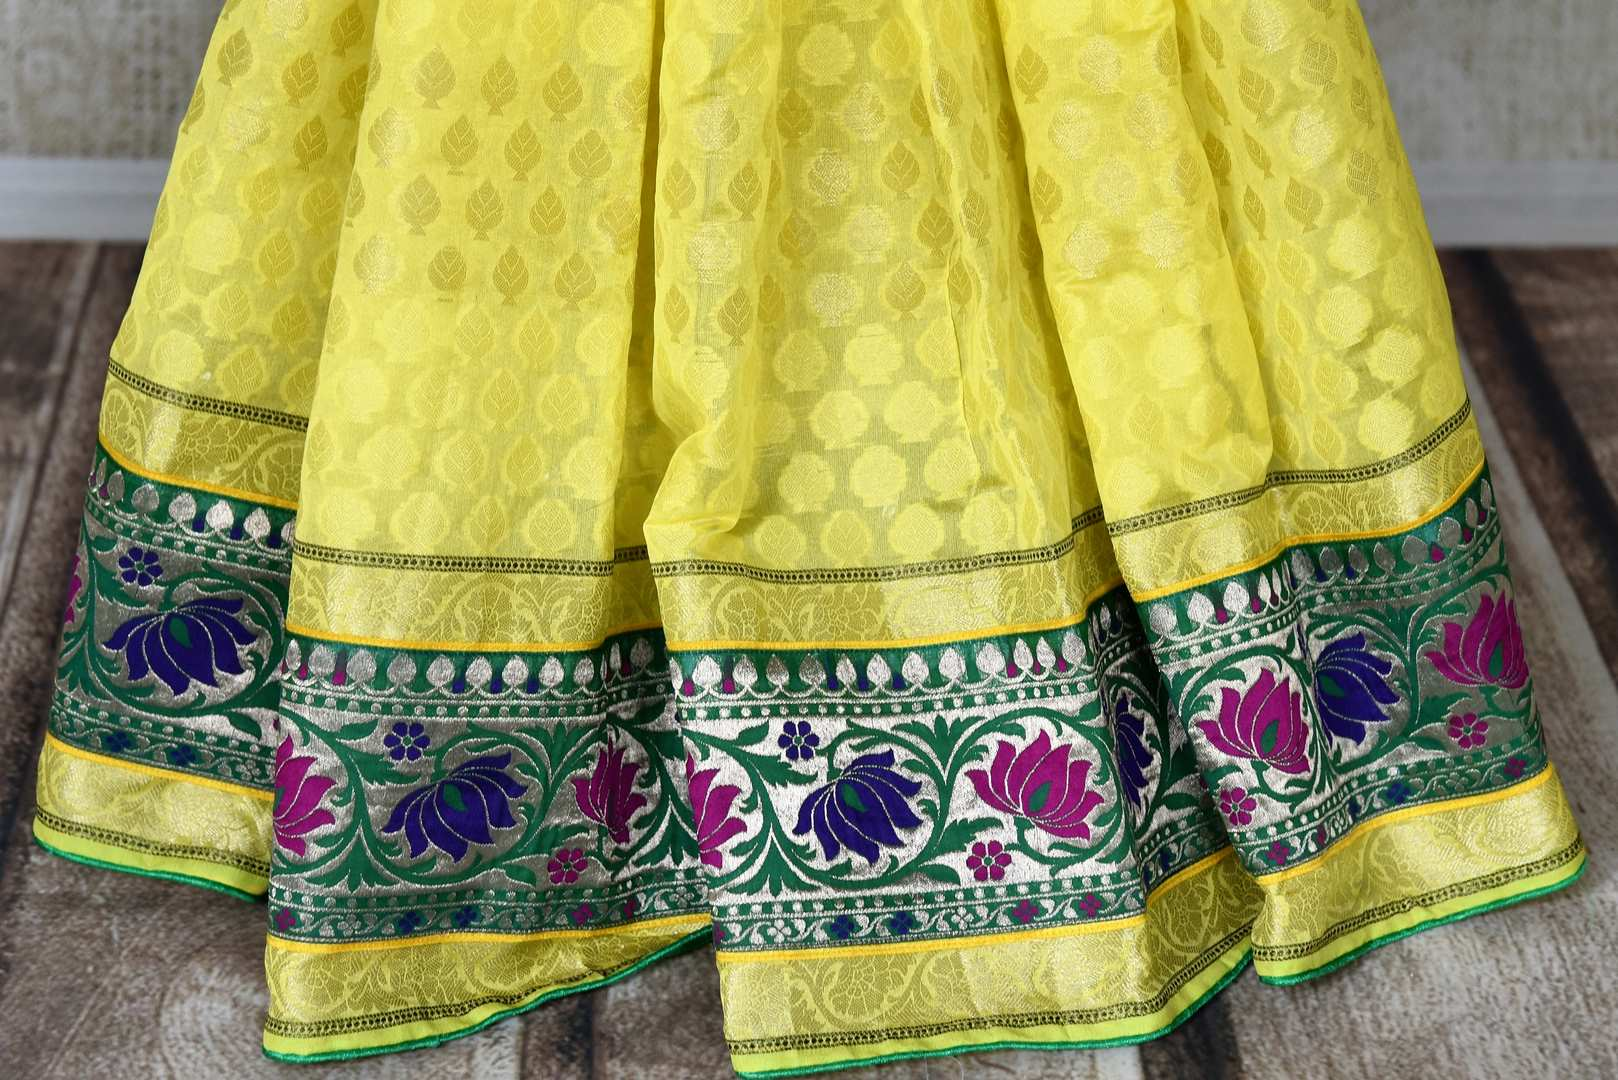 Buy bright yellow silk saree online in USA with floral zari minakari border. Shop the latest Indian women clothing and designer sarees for weddings and special occasions from Pure Elegance Indian clothing store in USA.-pleats